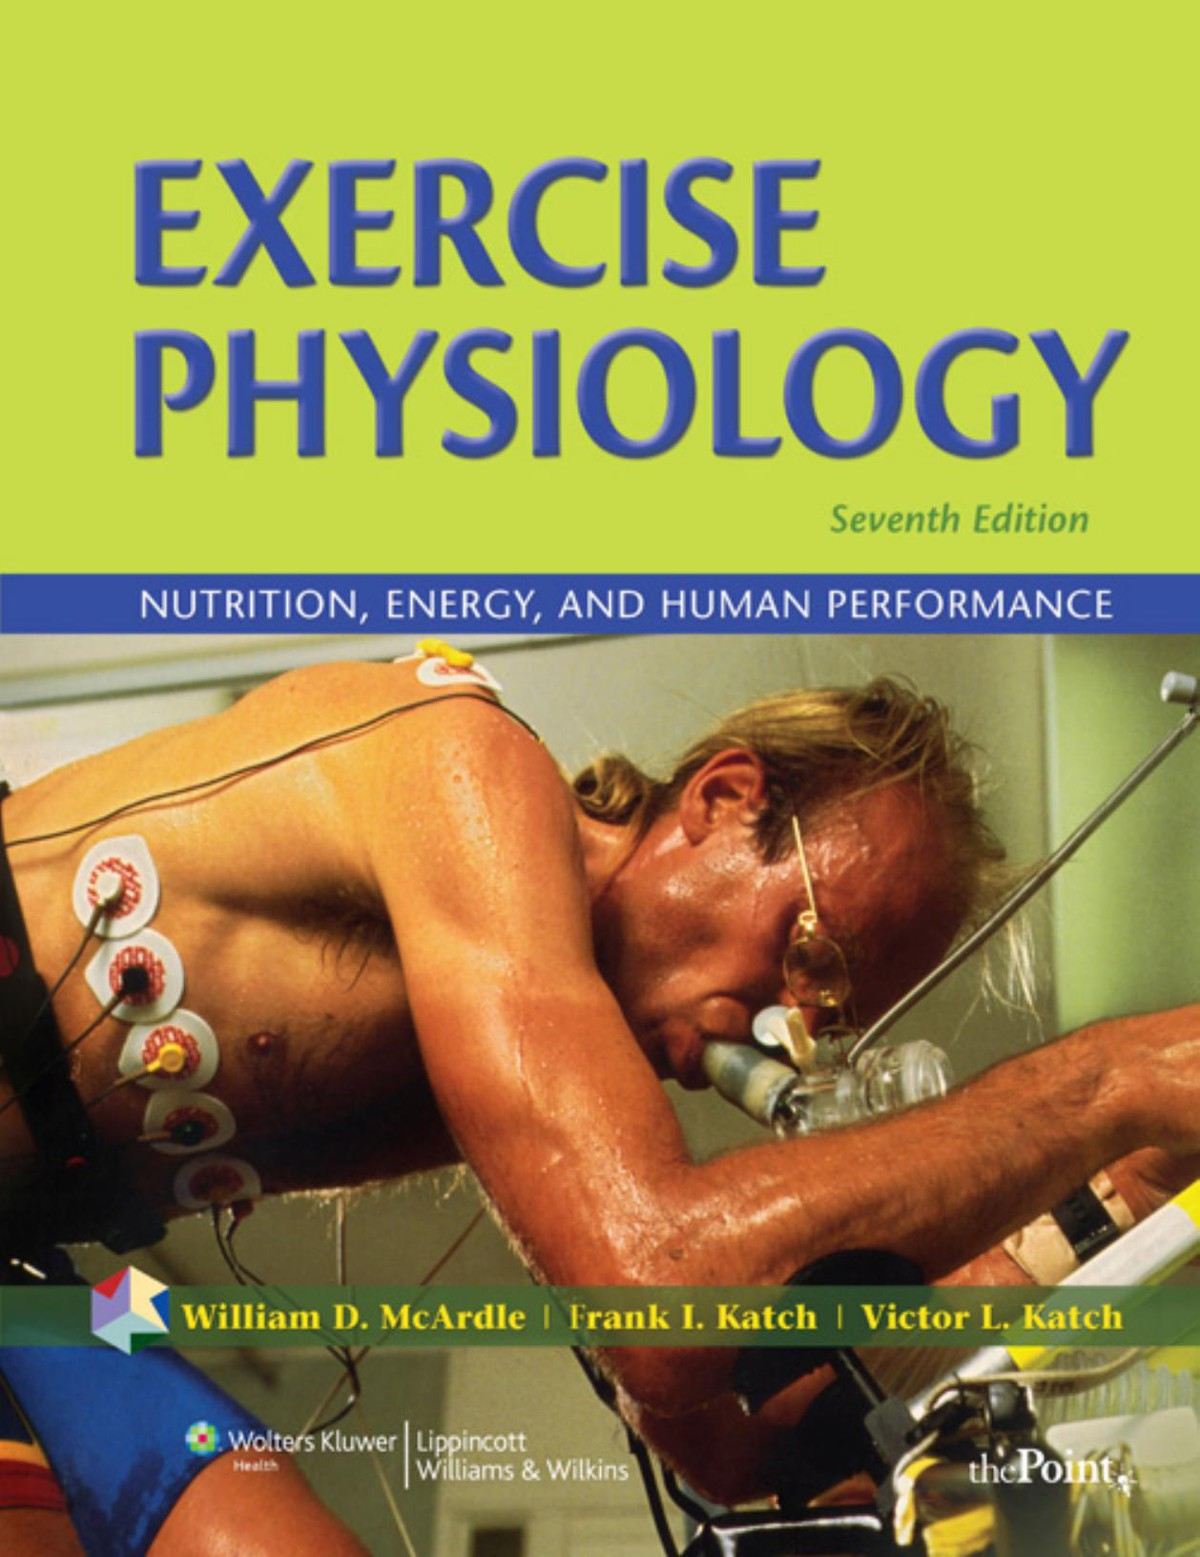 Exercise Physiology Nutrition, Energy, and Human Performance 7th Edition PDF